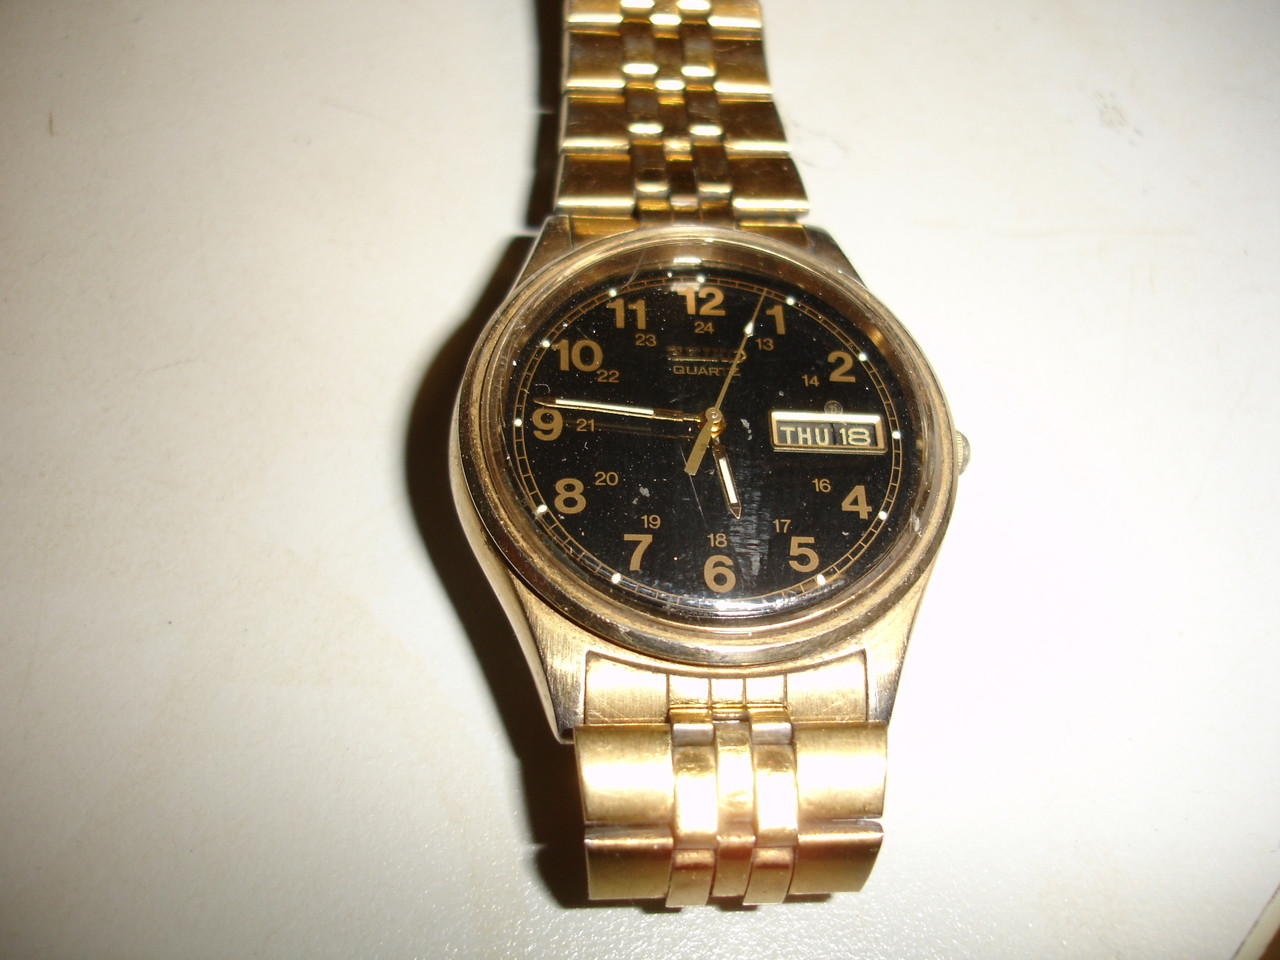 Seiko Model 7n43 Quartz Watch Black Dial Gold Case And Original Band Day Date